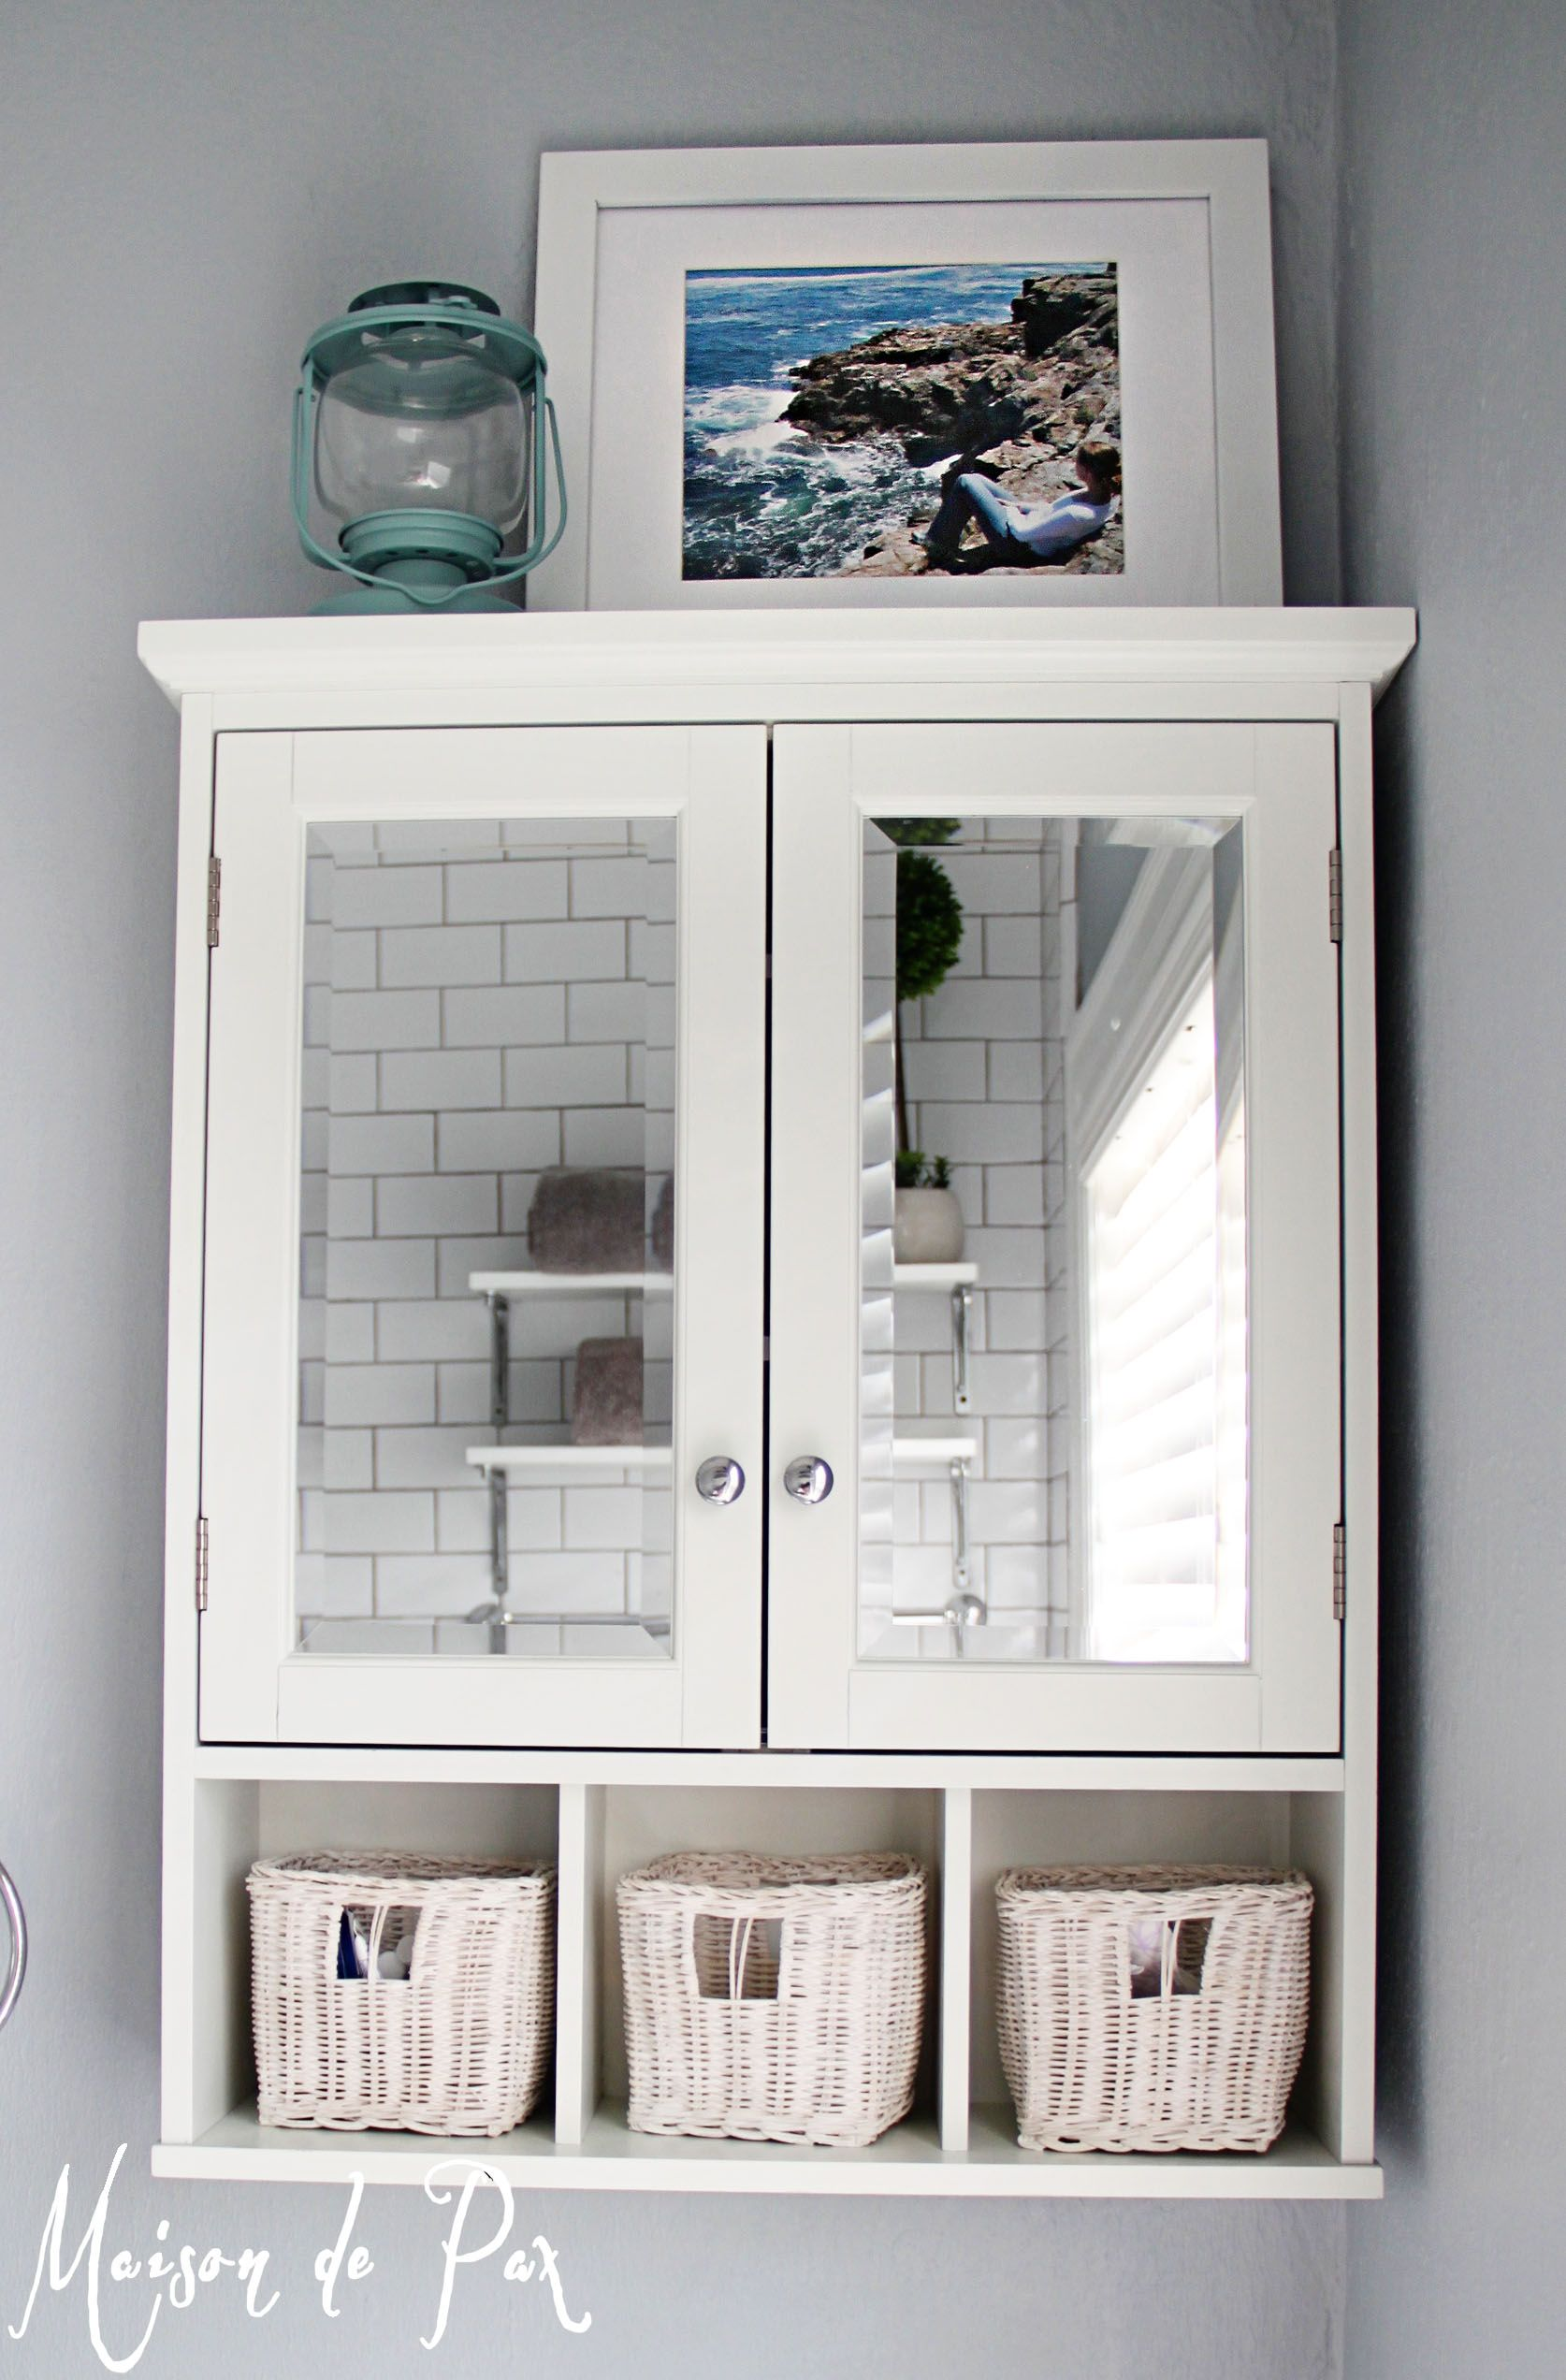 10 Tips for Designing a Small Bathroom | Medicine cabinets, Toilet ...